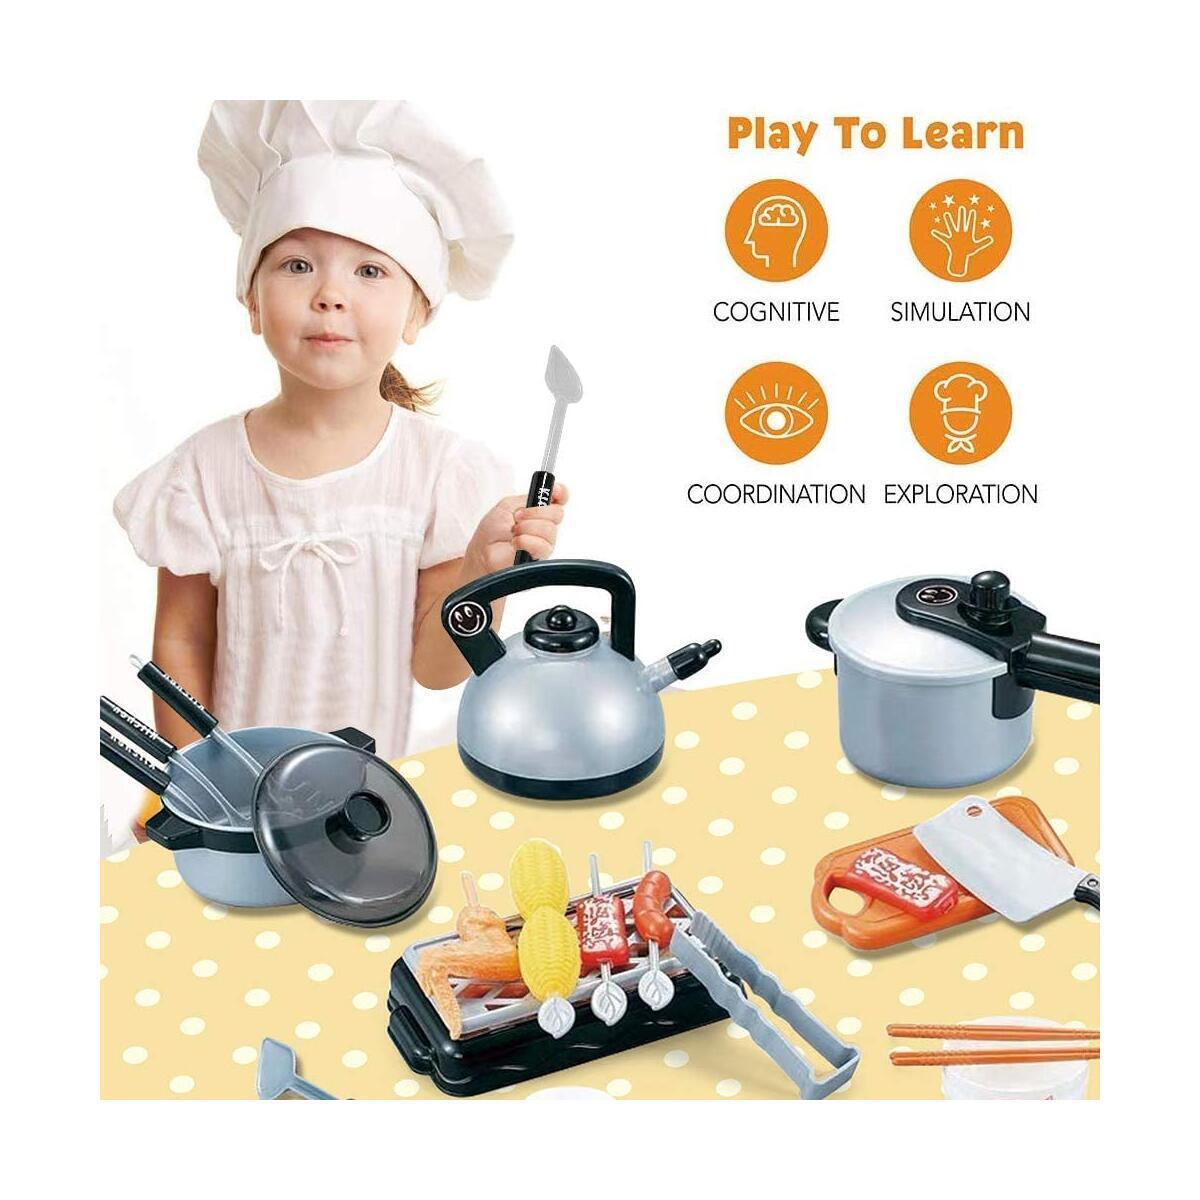 Happytime 36 Pieces Cooking Pretend Play Toy Kitchen Cookware Playset Including Pots and Pans Play Food, Cutting Vegetables, Toy Utensils Gray